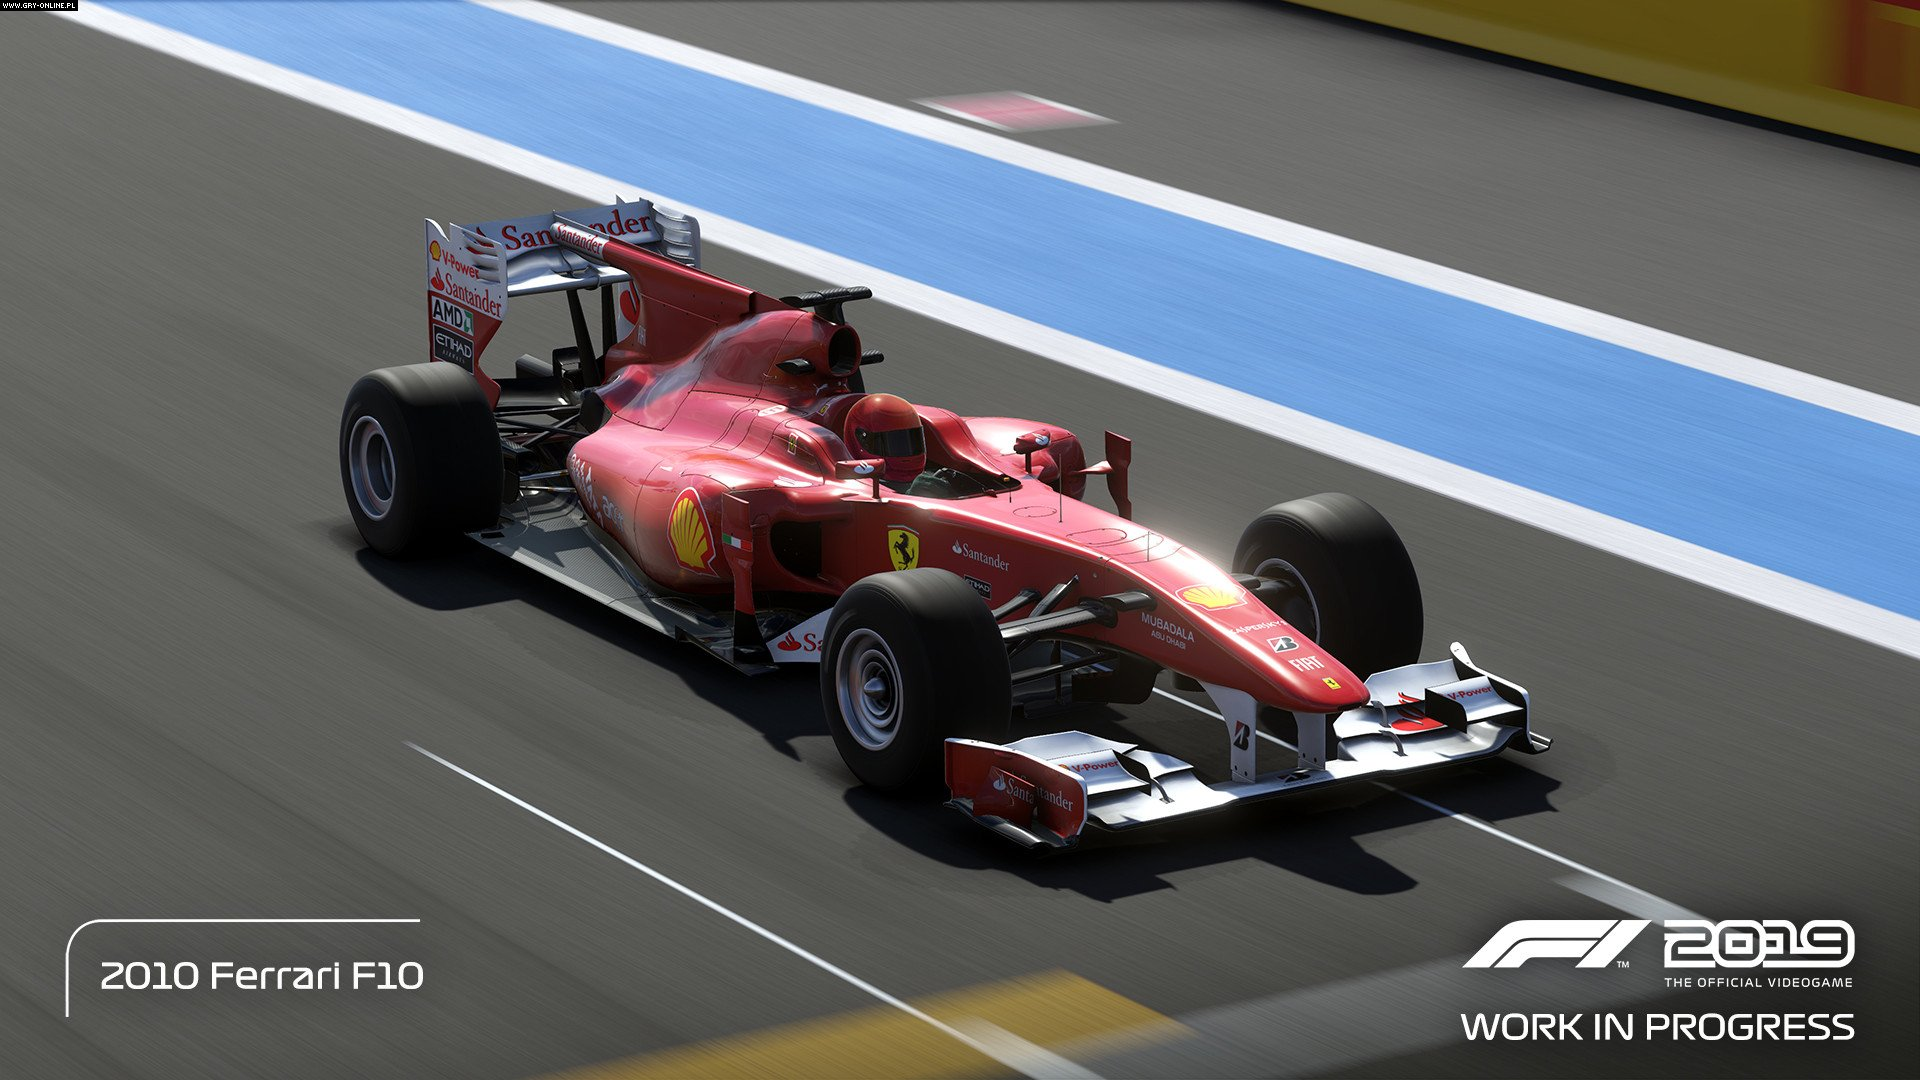 F1 2019 PC, PS4, XONE Games Image 94/104, Codemasters Software